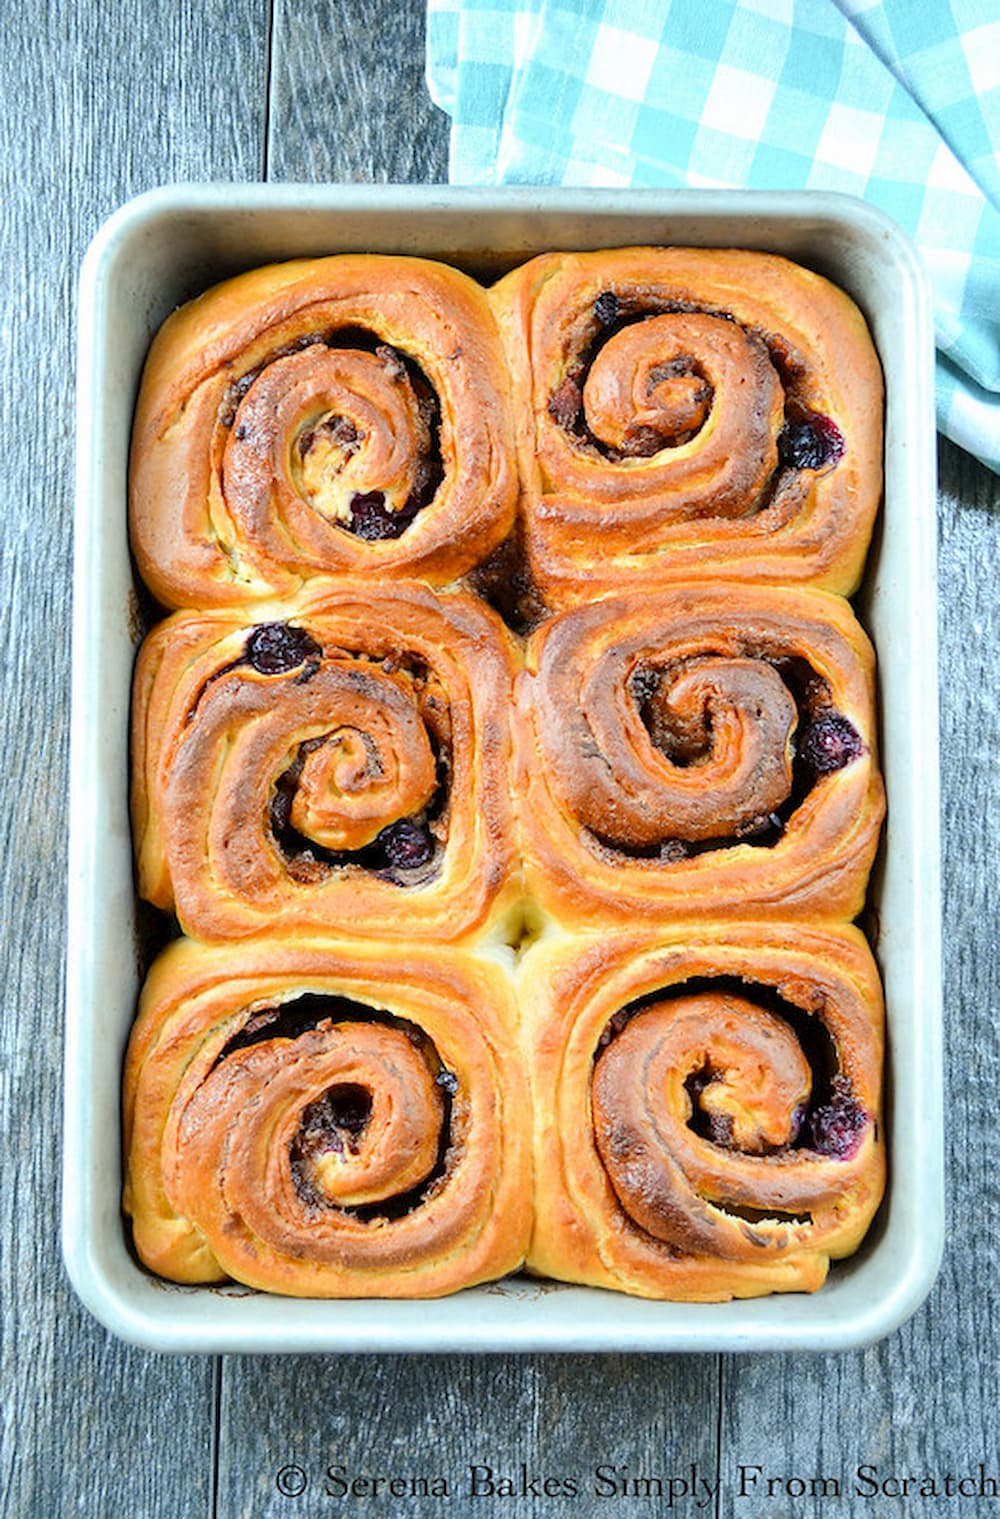 Down shot of Baked Blueberry Bacon Cinnamon Rolls in a baking pan.